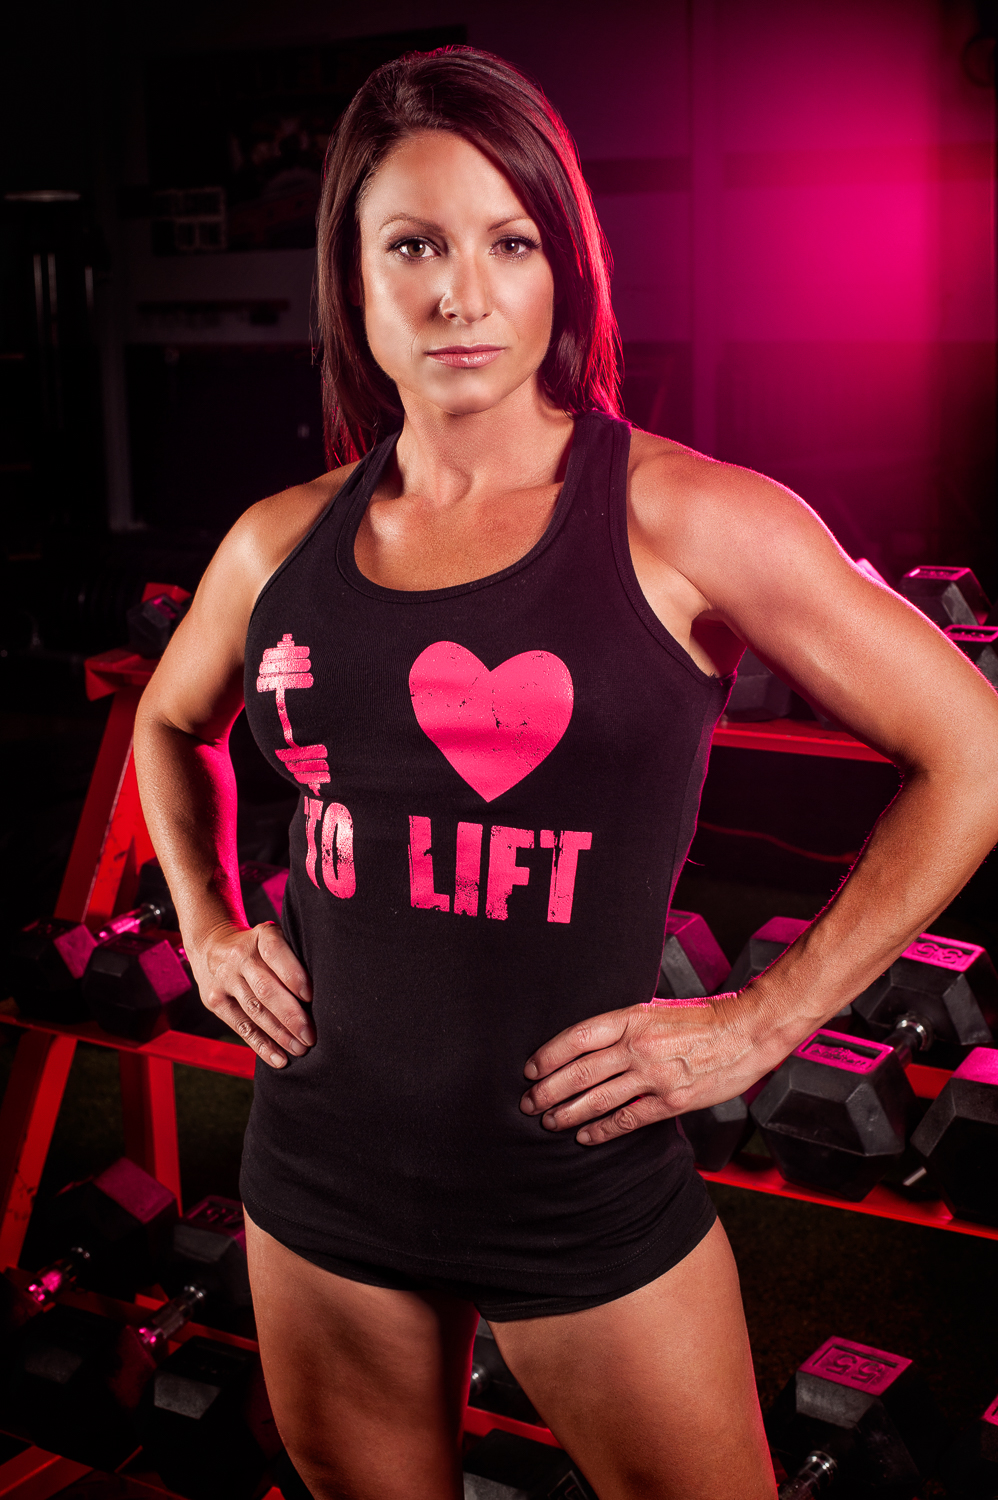 Hamilton Toronto Fitness Photographer - Metamorfose Clothing Line I heart to lift by Marek Michalek.jpg